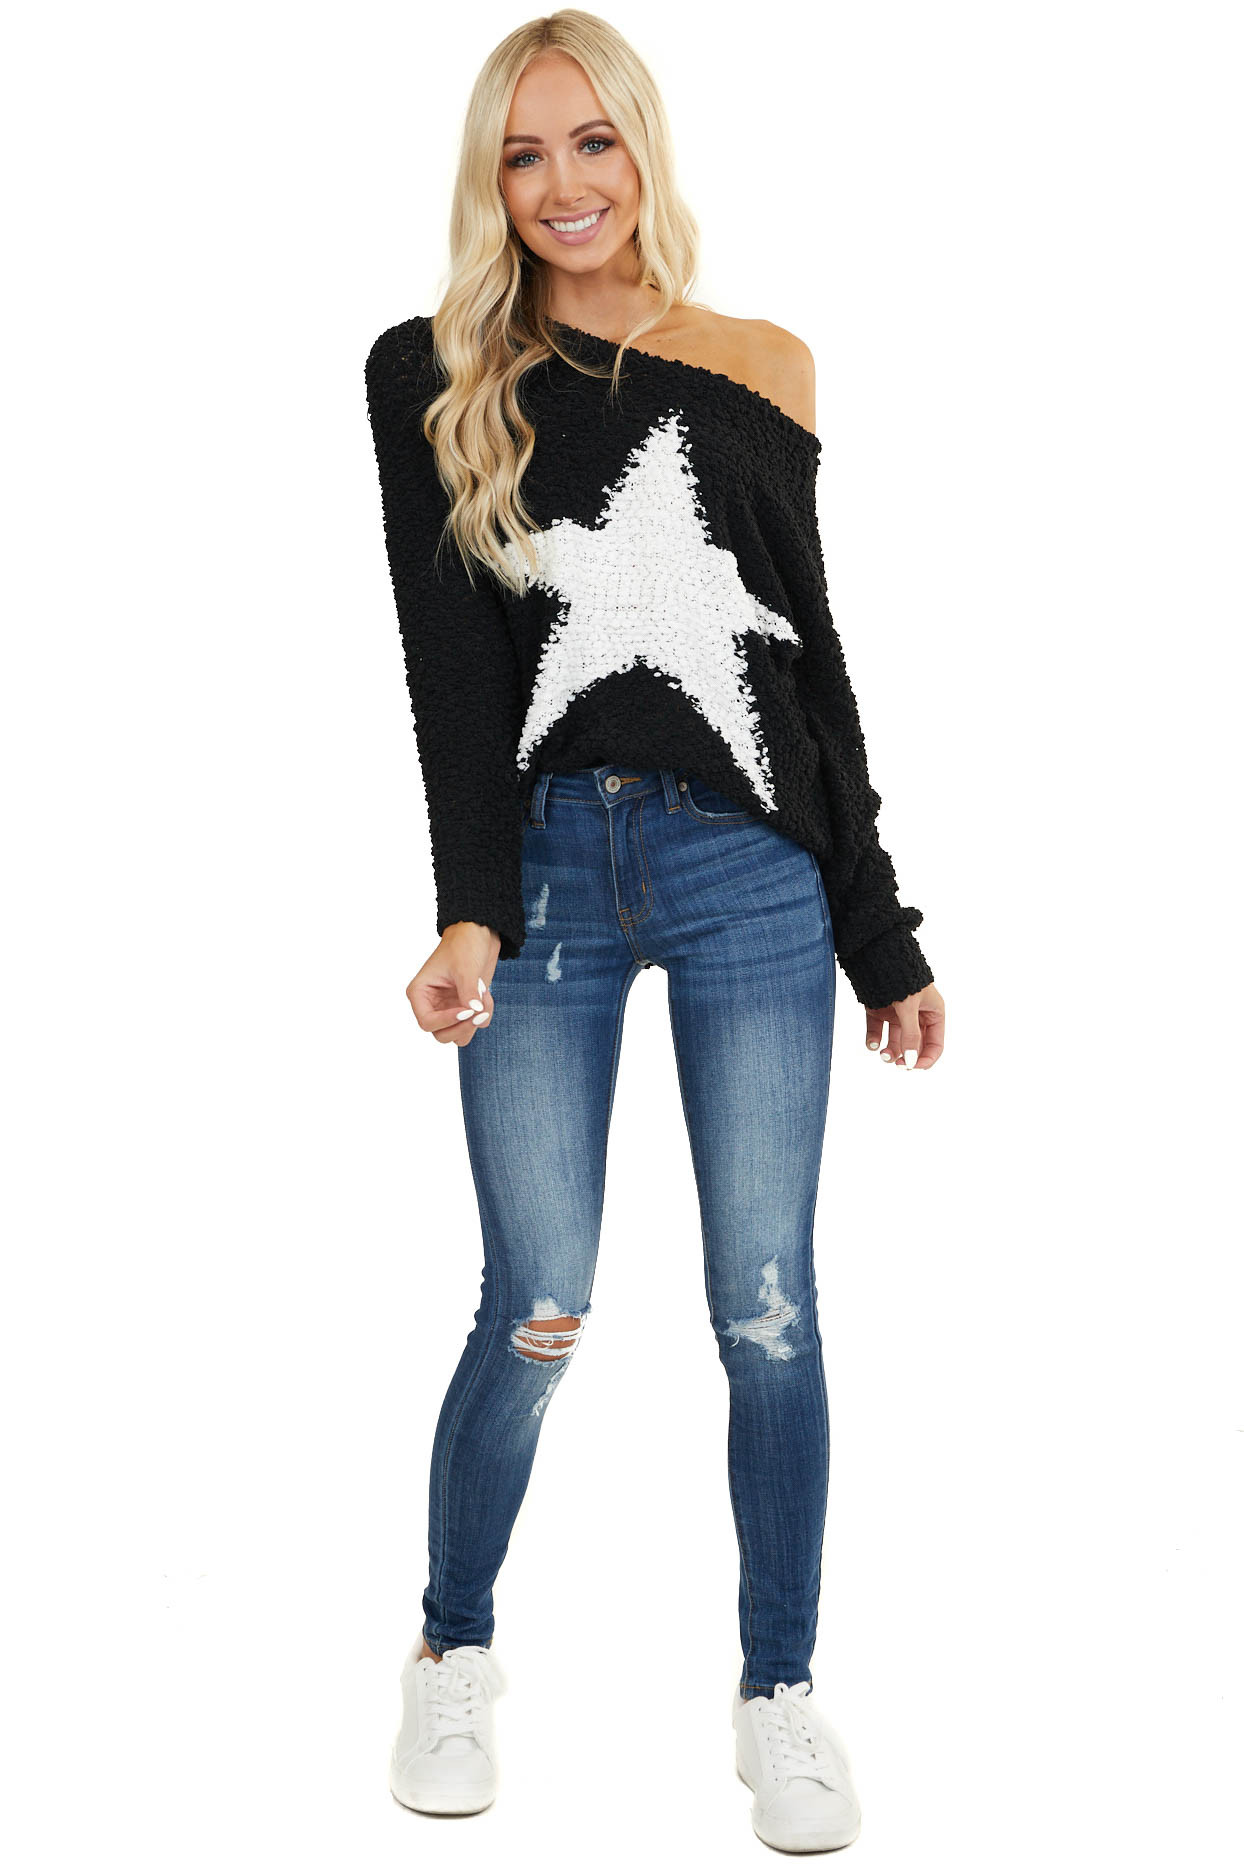 Black Popcorn Knit Soft Sweater with White Star